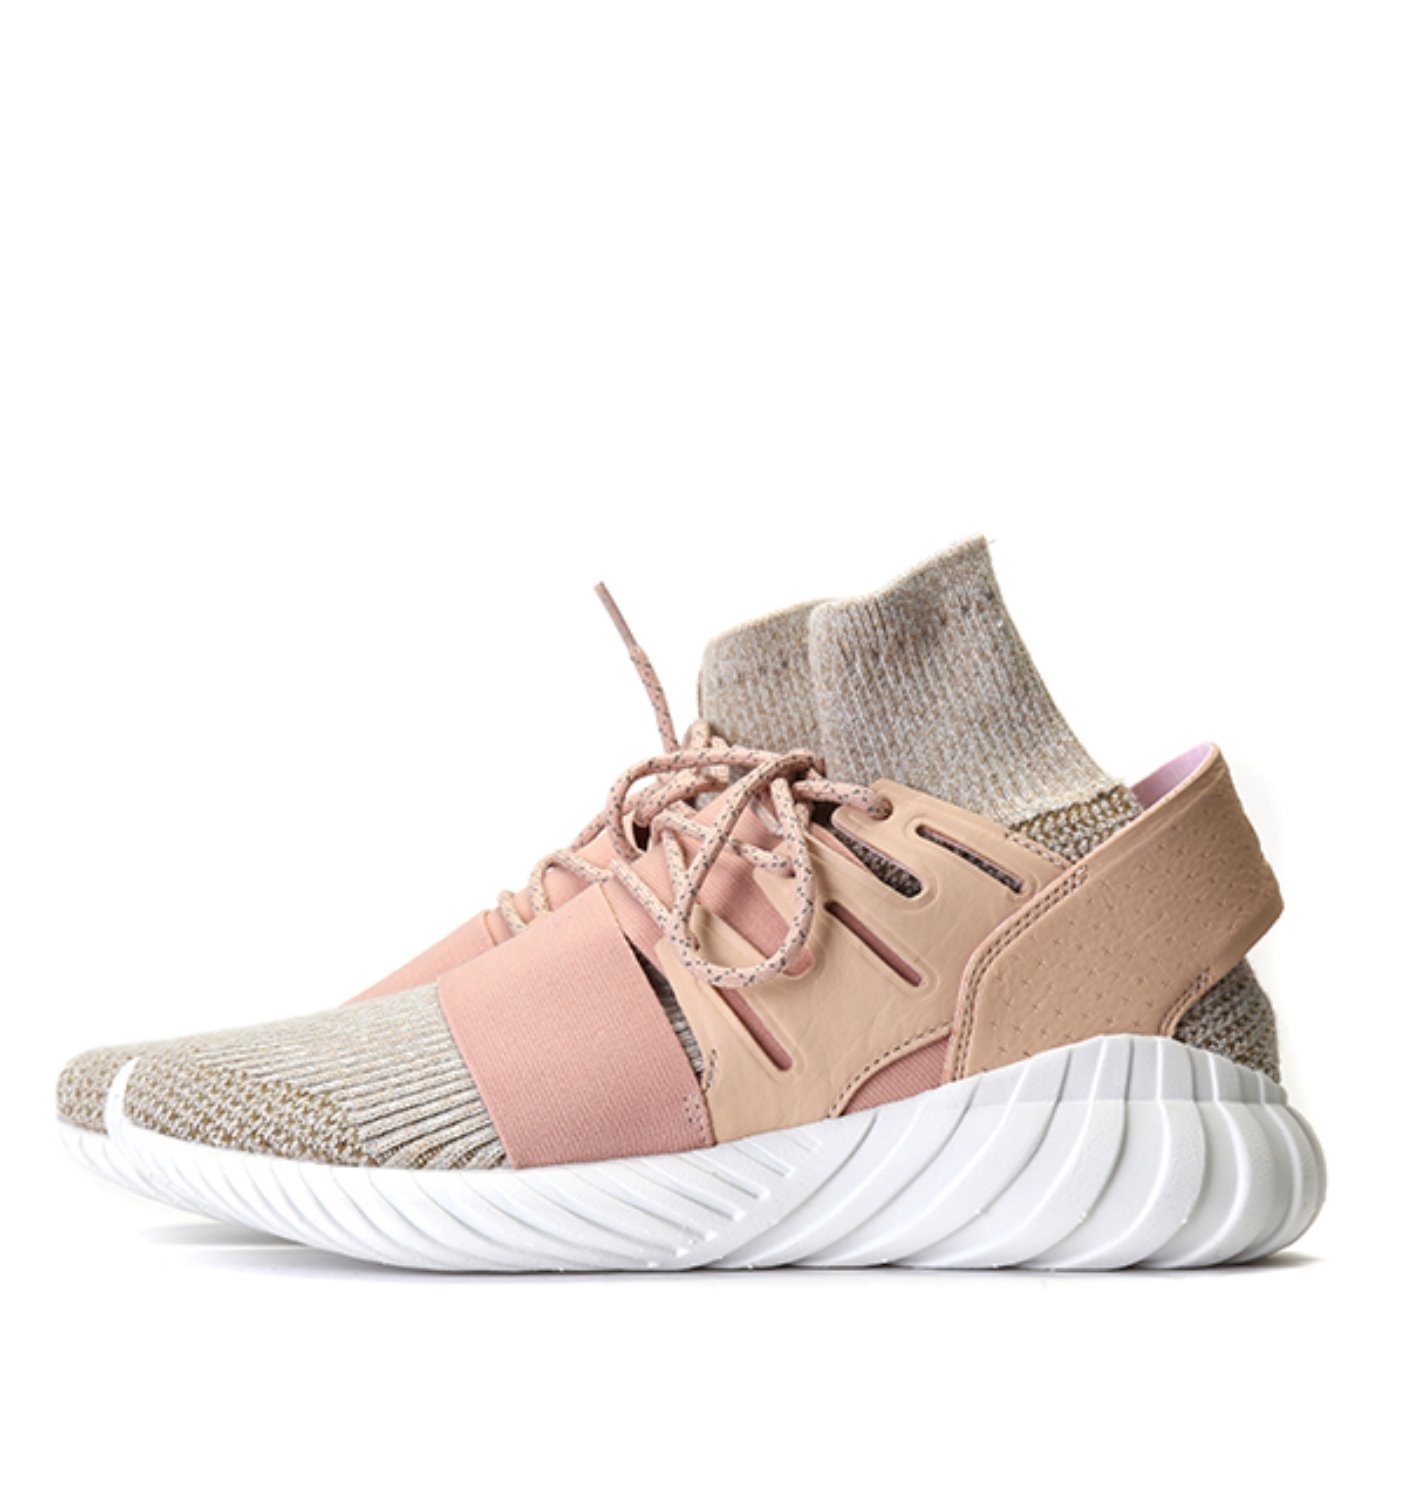 TUBULAR DOOM PK PALE NUDE/BLISS/VINTAGE WHITE(BB2390)